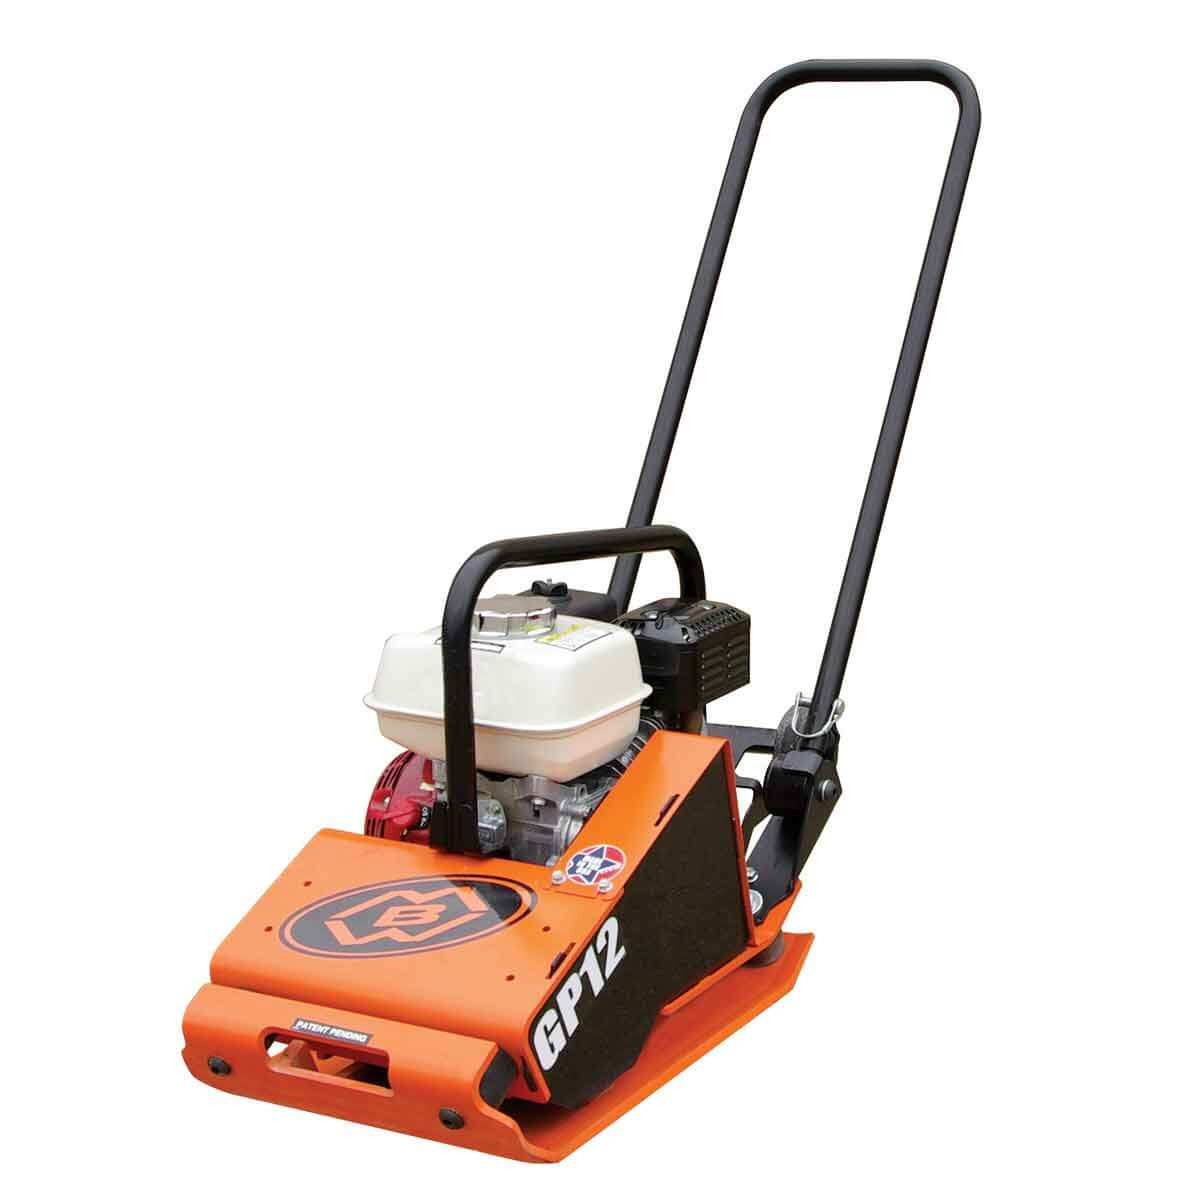 MBW GP12H Plate Compactor